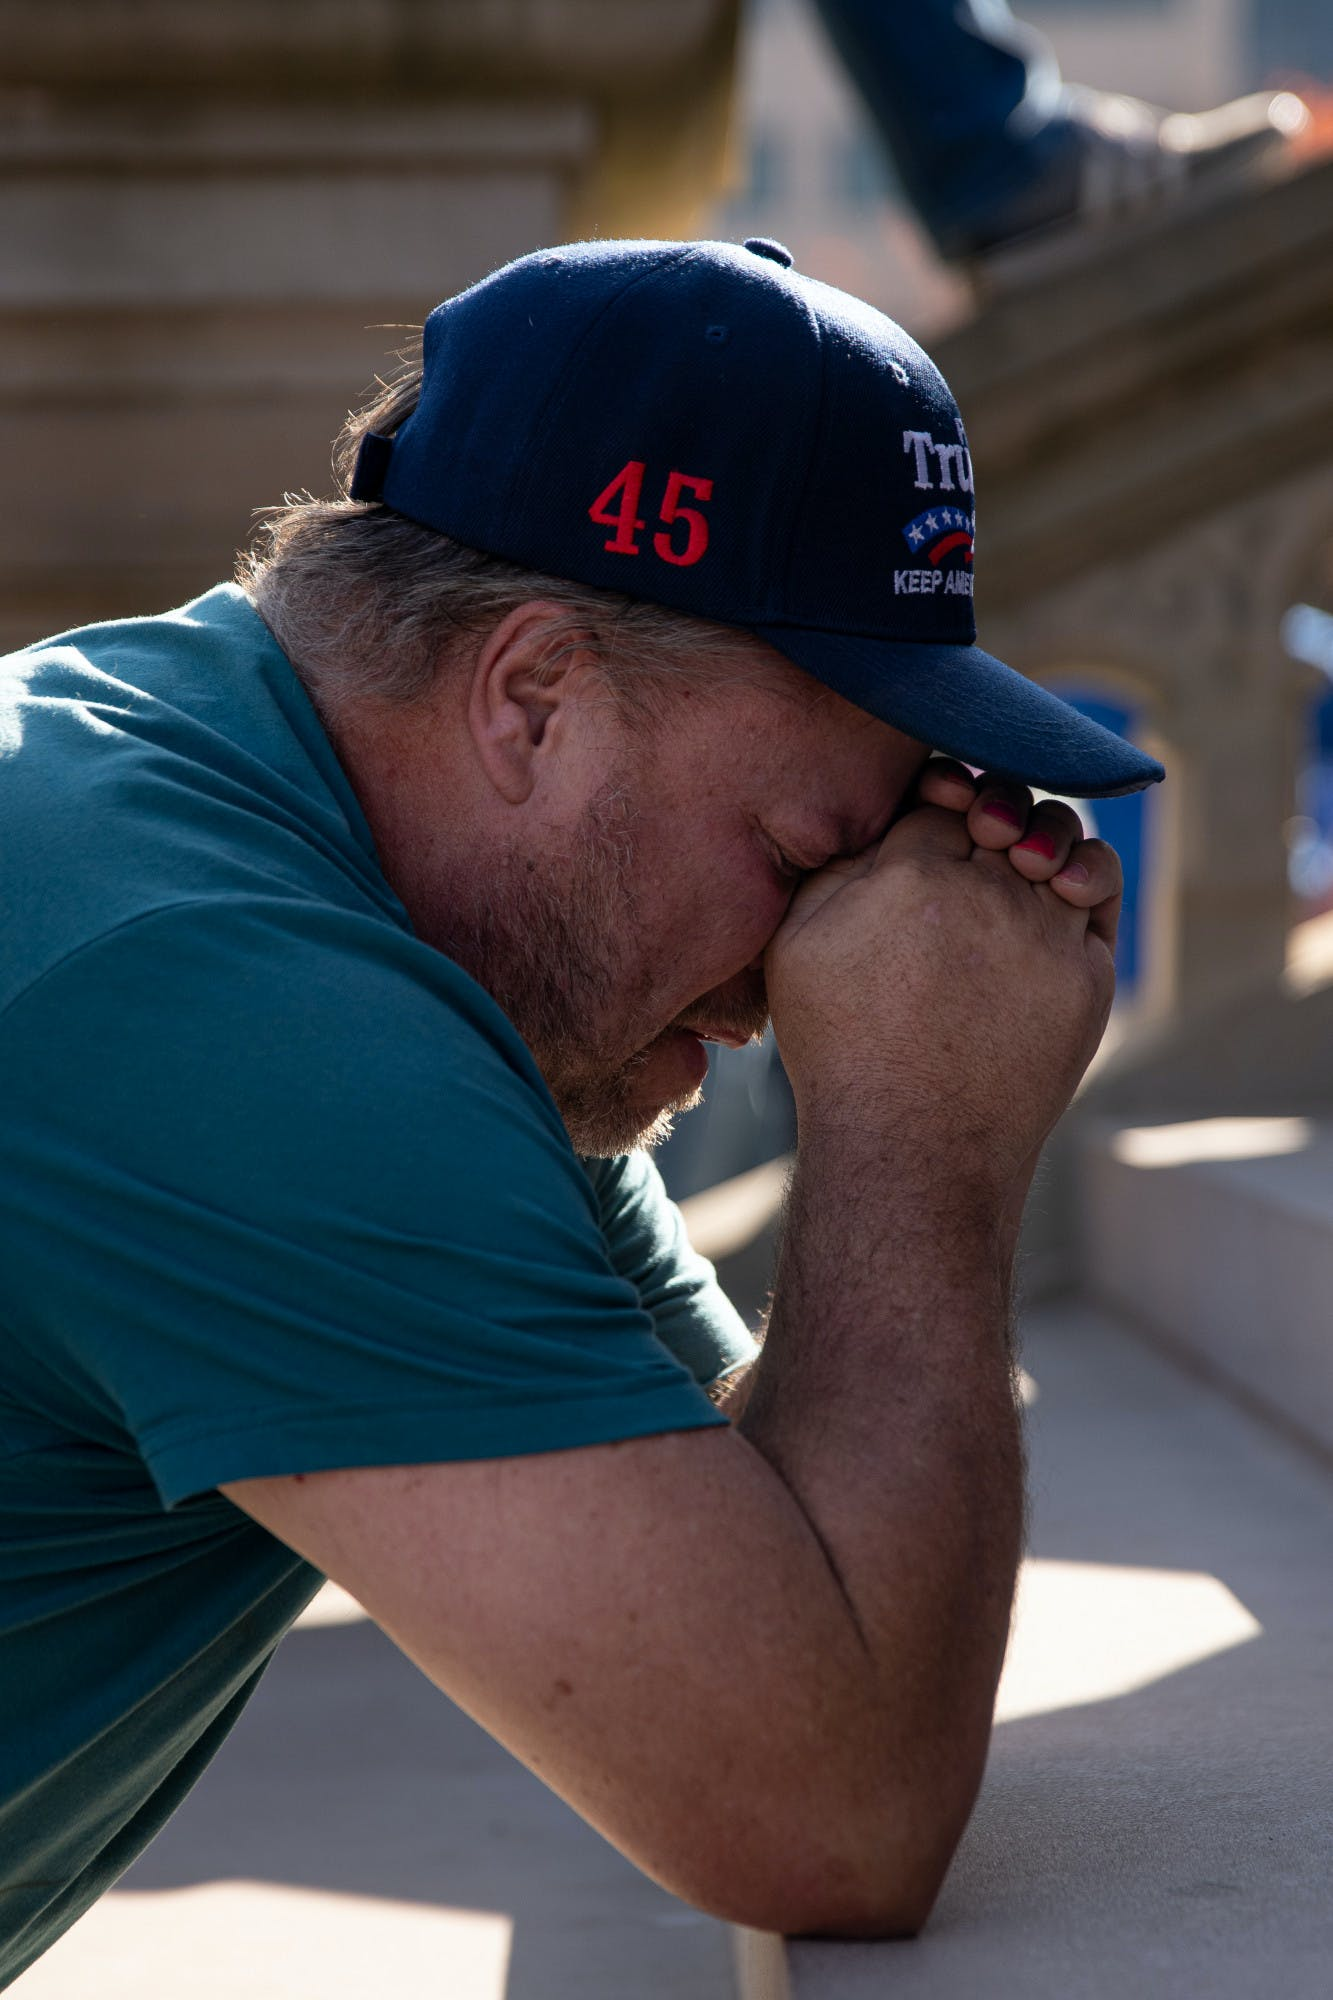 A person wearing a Trump hat prays.